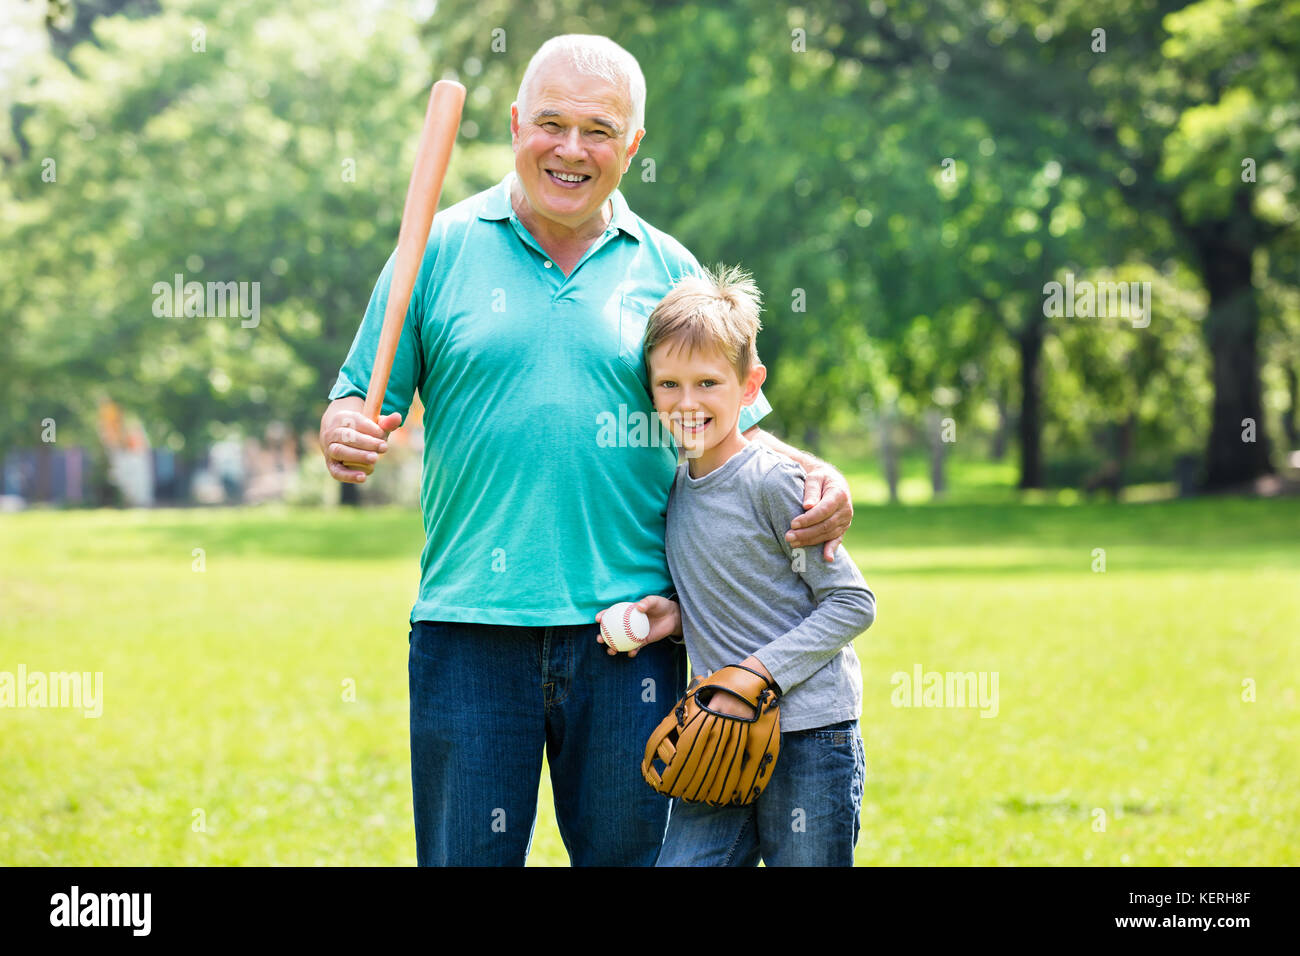 boy catch baseball stock photos  u0026 boy catch baseball stock images